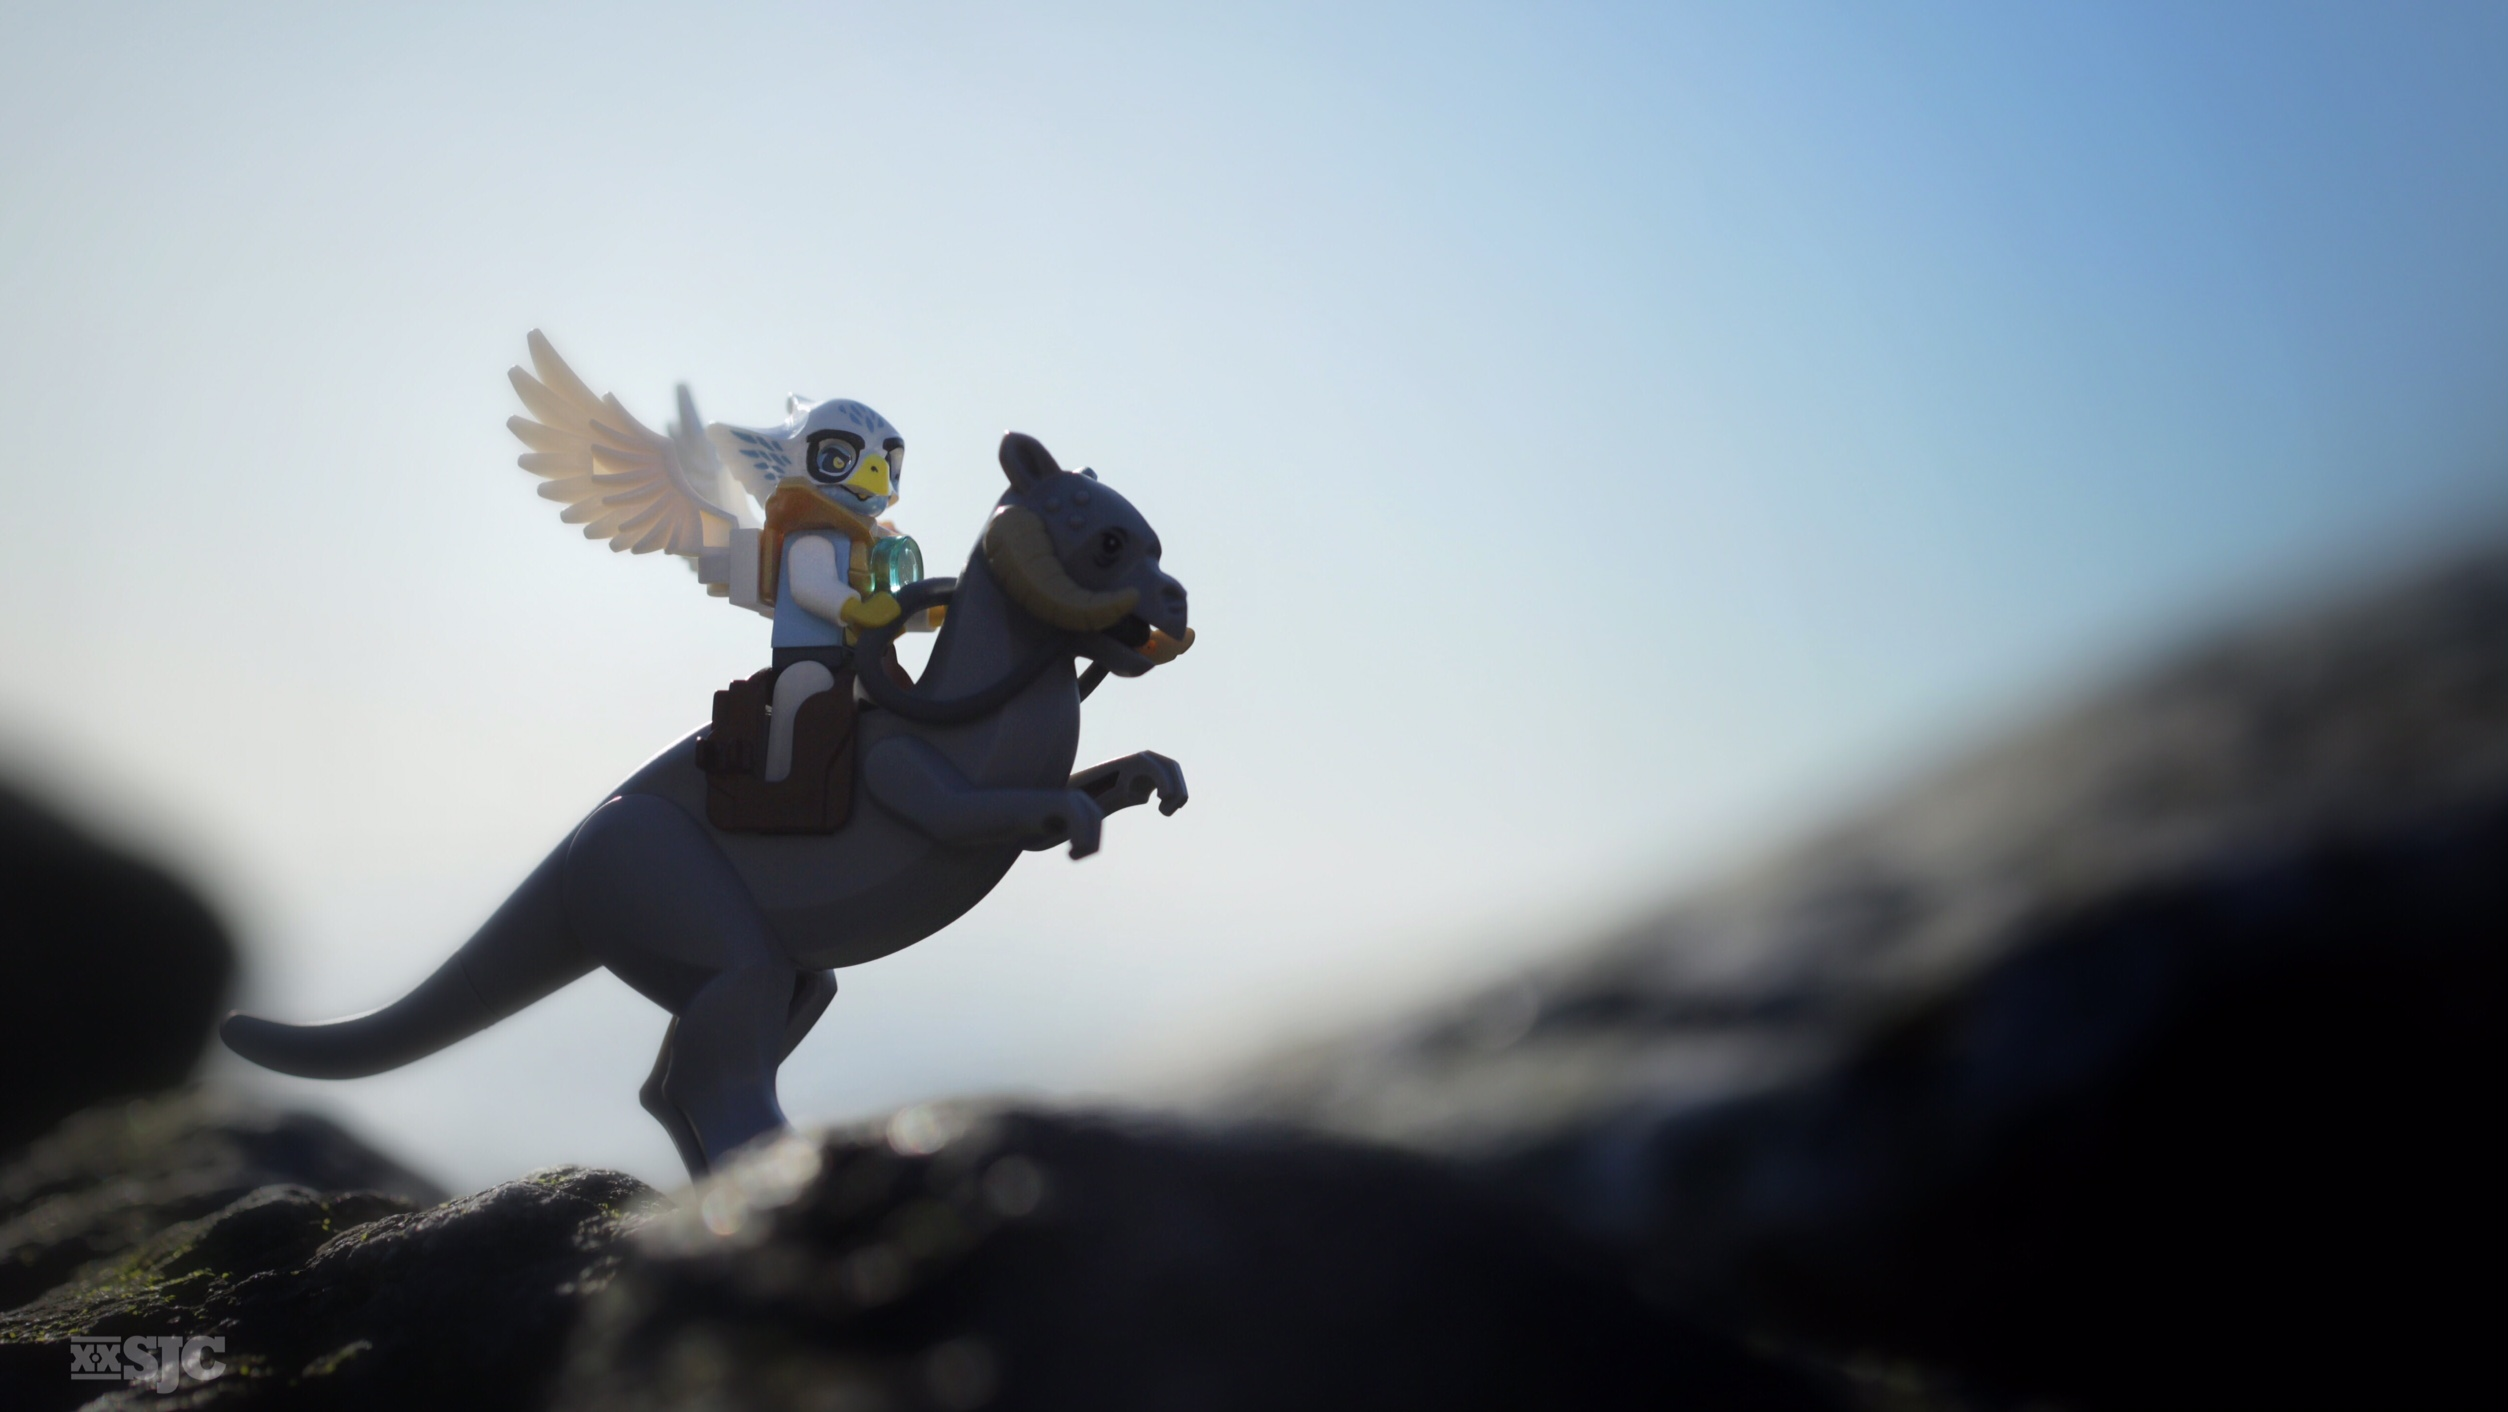 Scale and Toy Photography